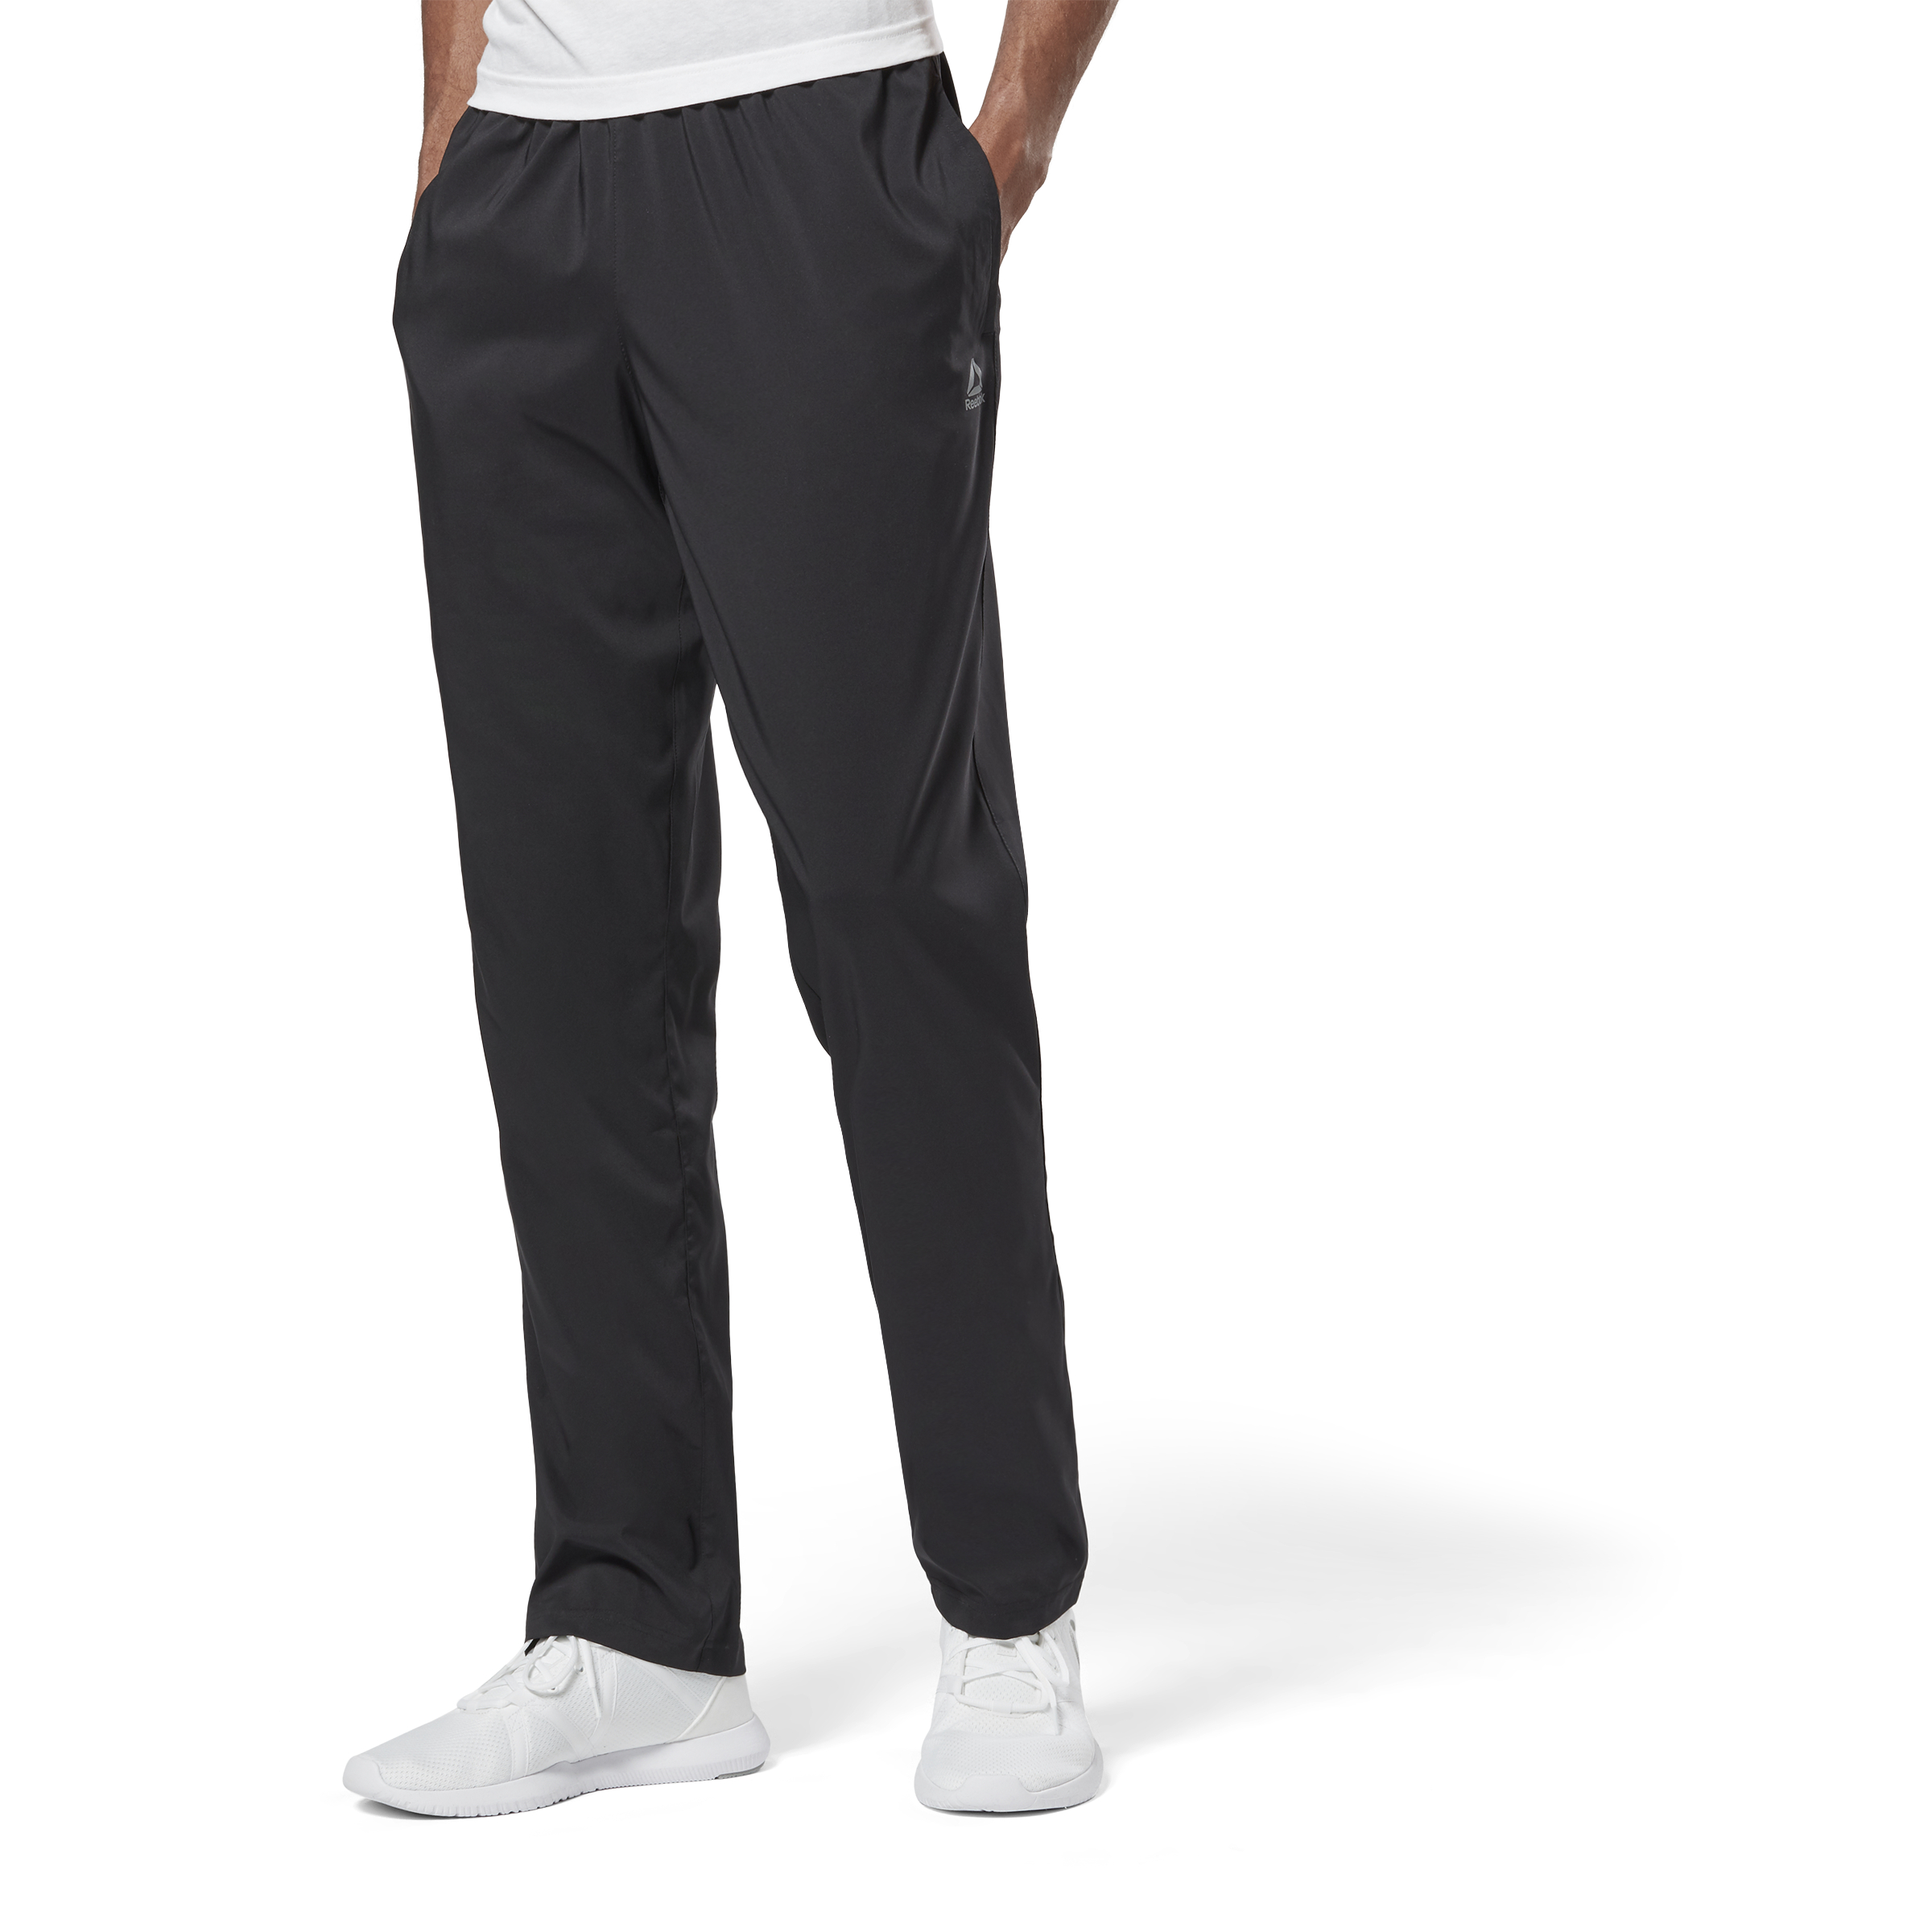 Reebok-Men-039-s-Training-Essentials-Woven-Pant thumbnail 10